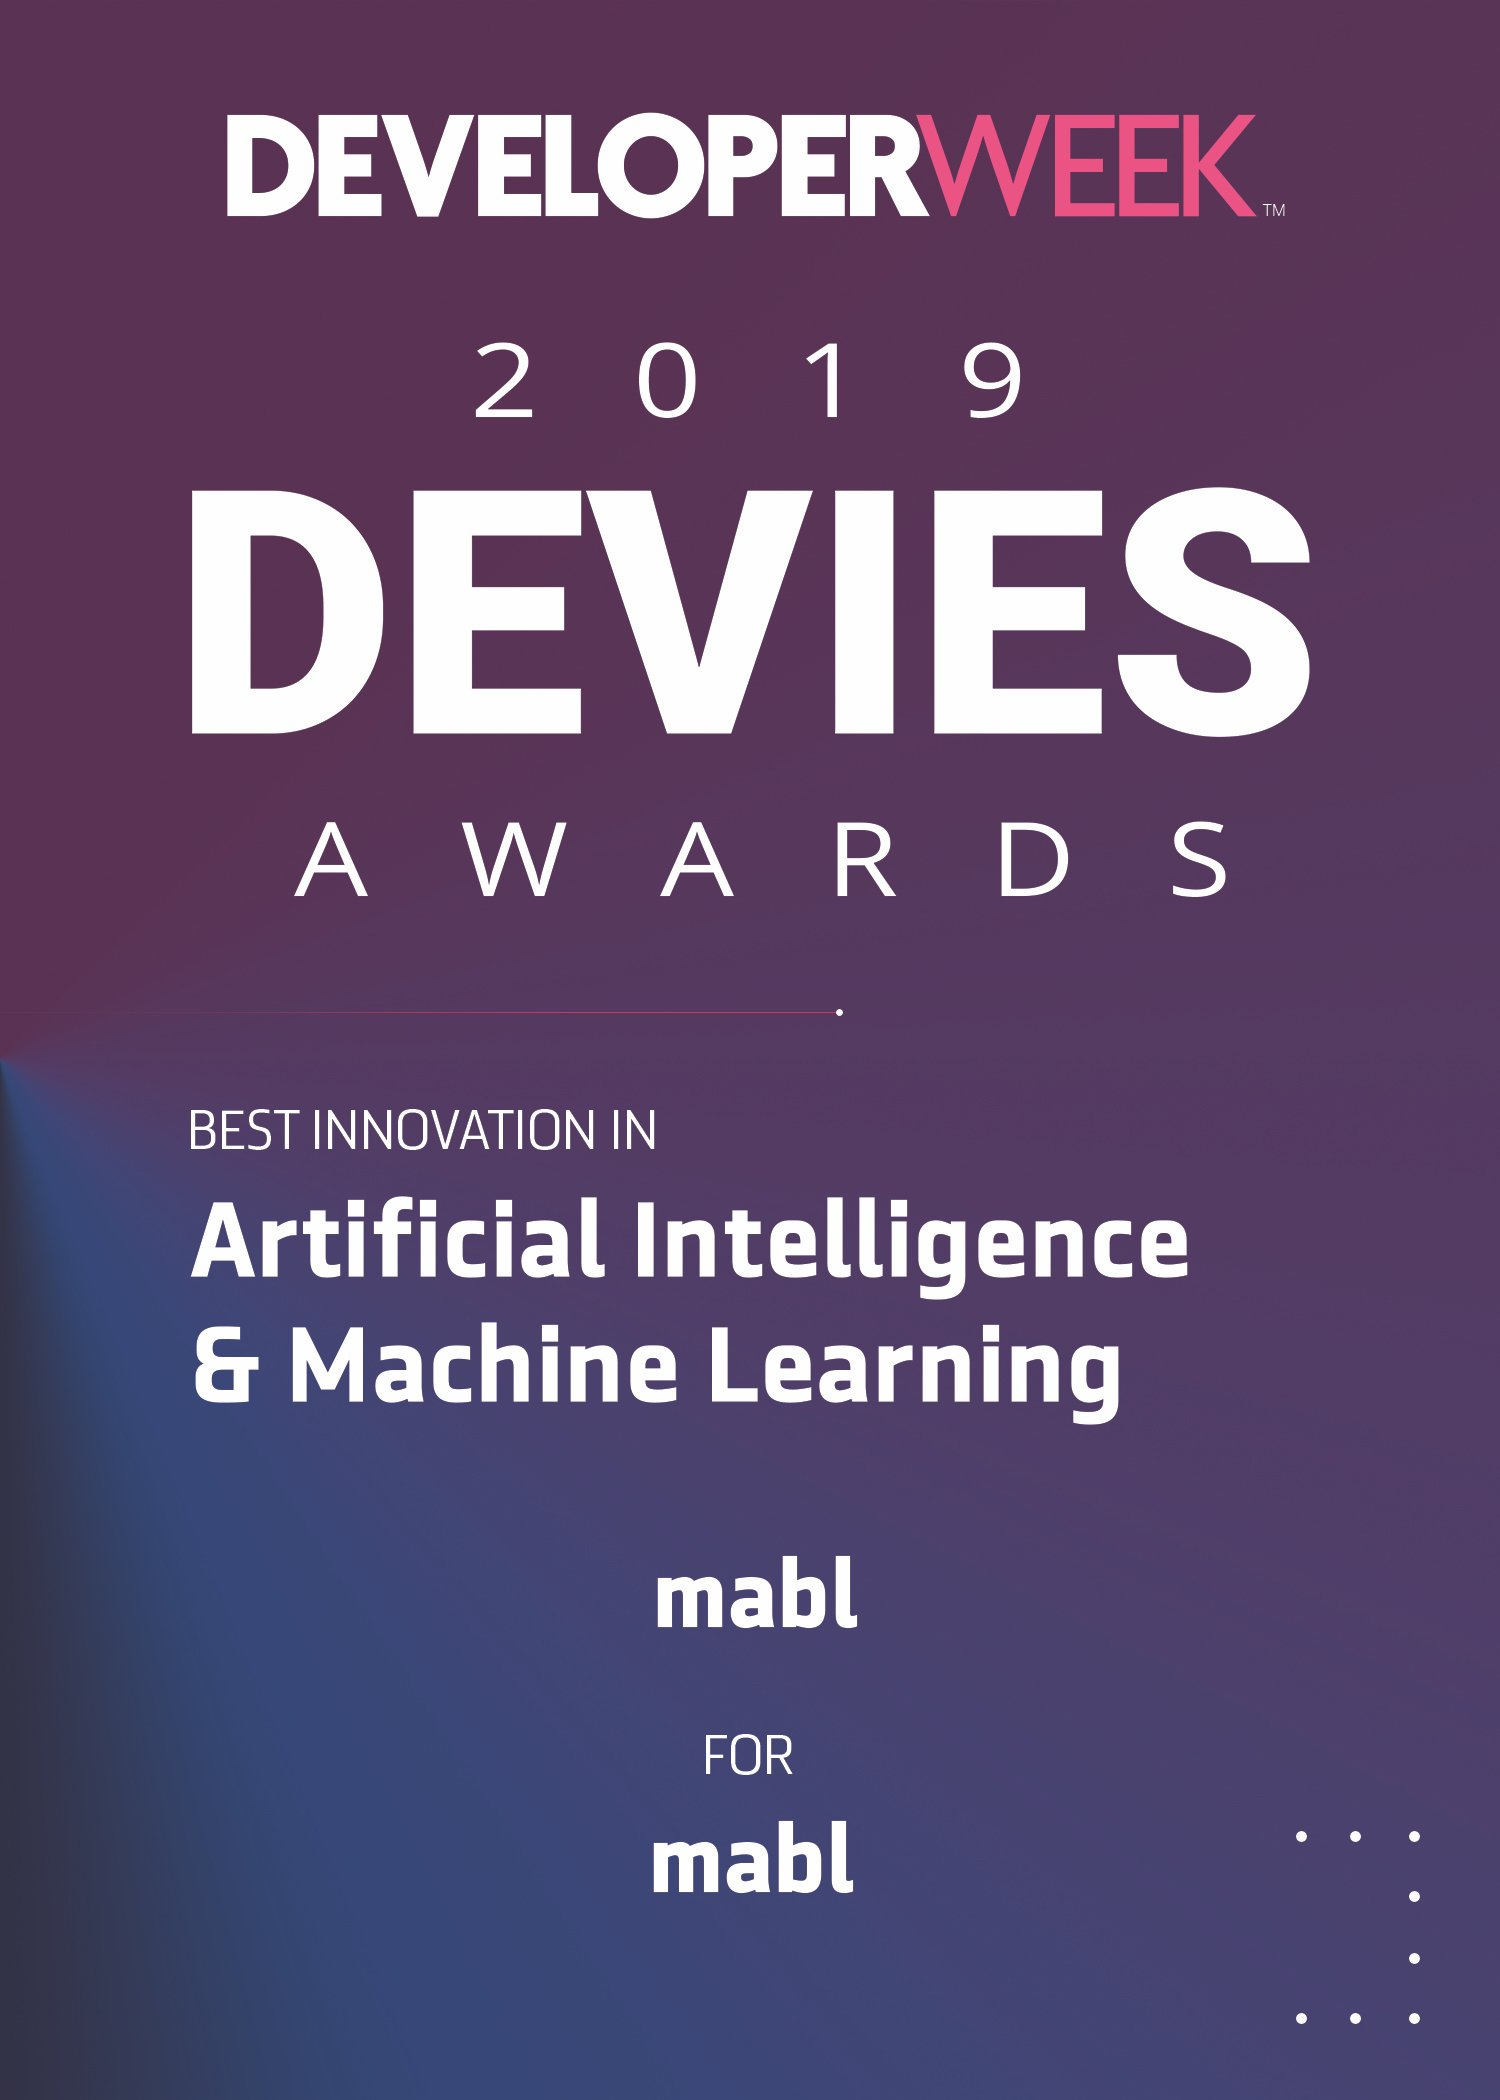 mabl Wins 2019 DEVIES Award for Best Innovation in AI & ML